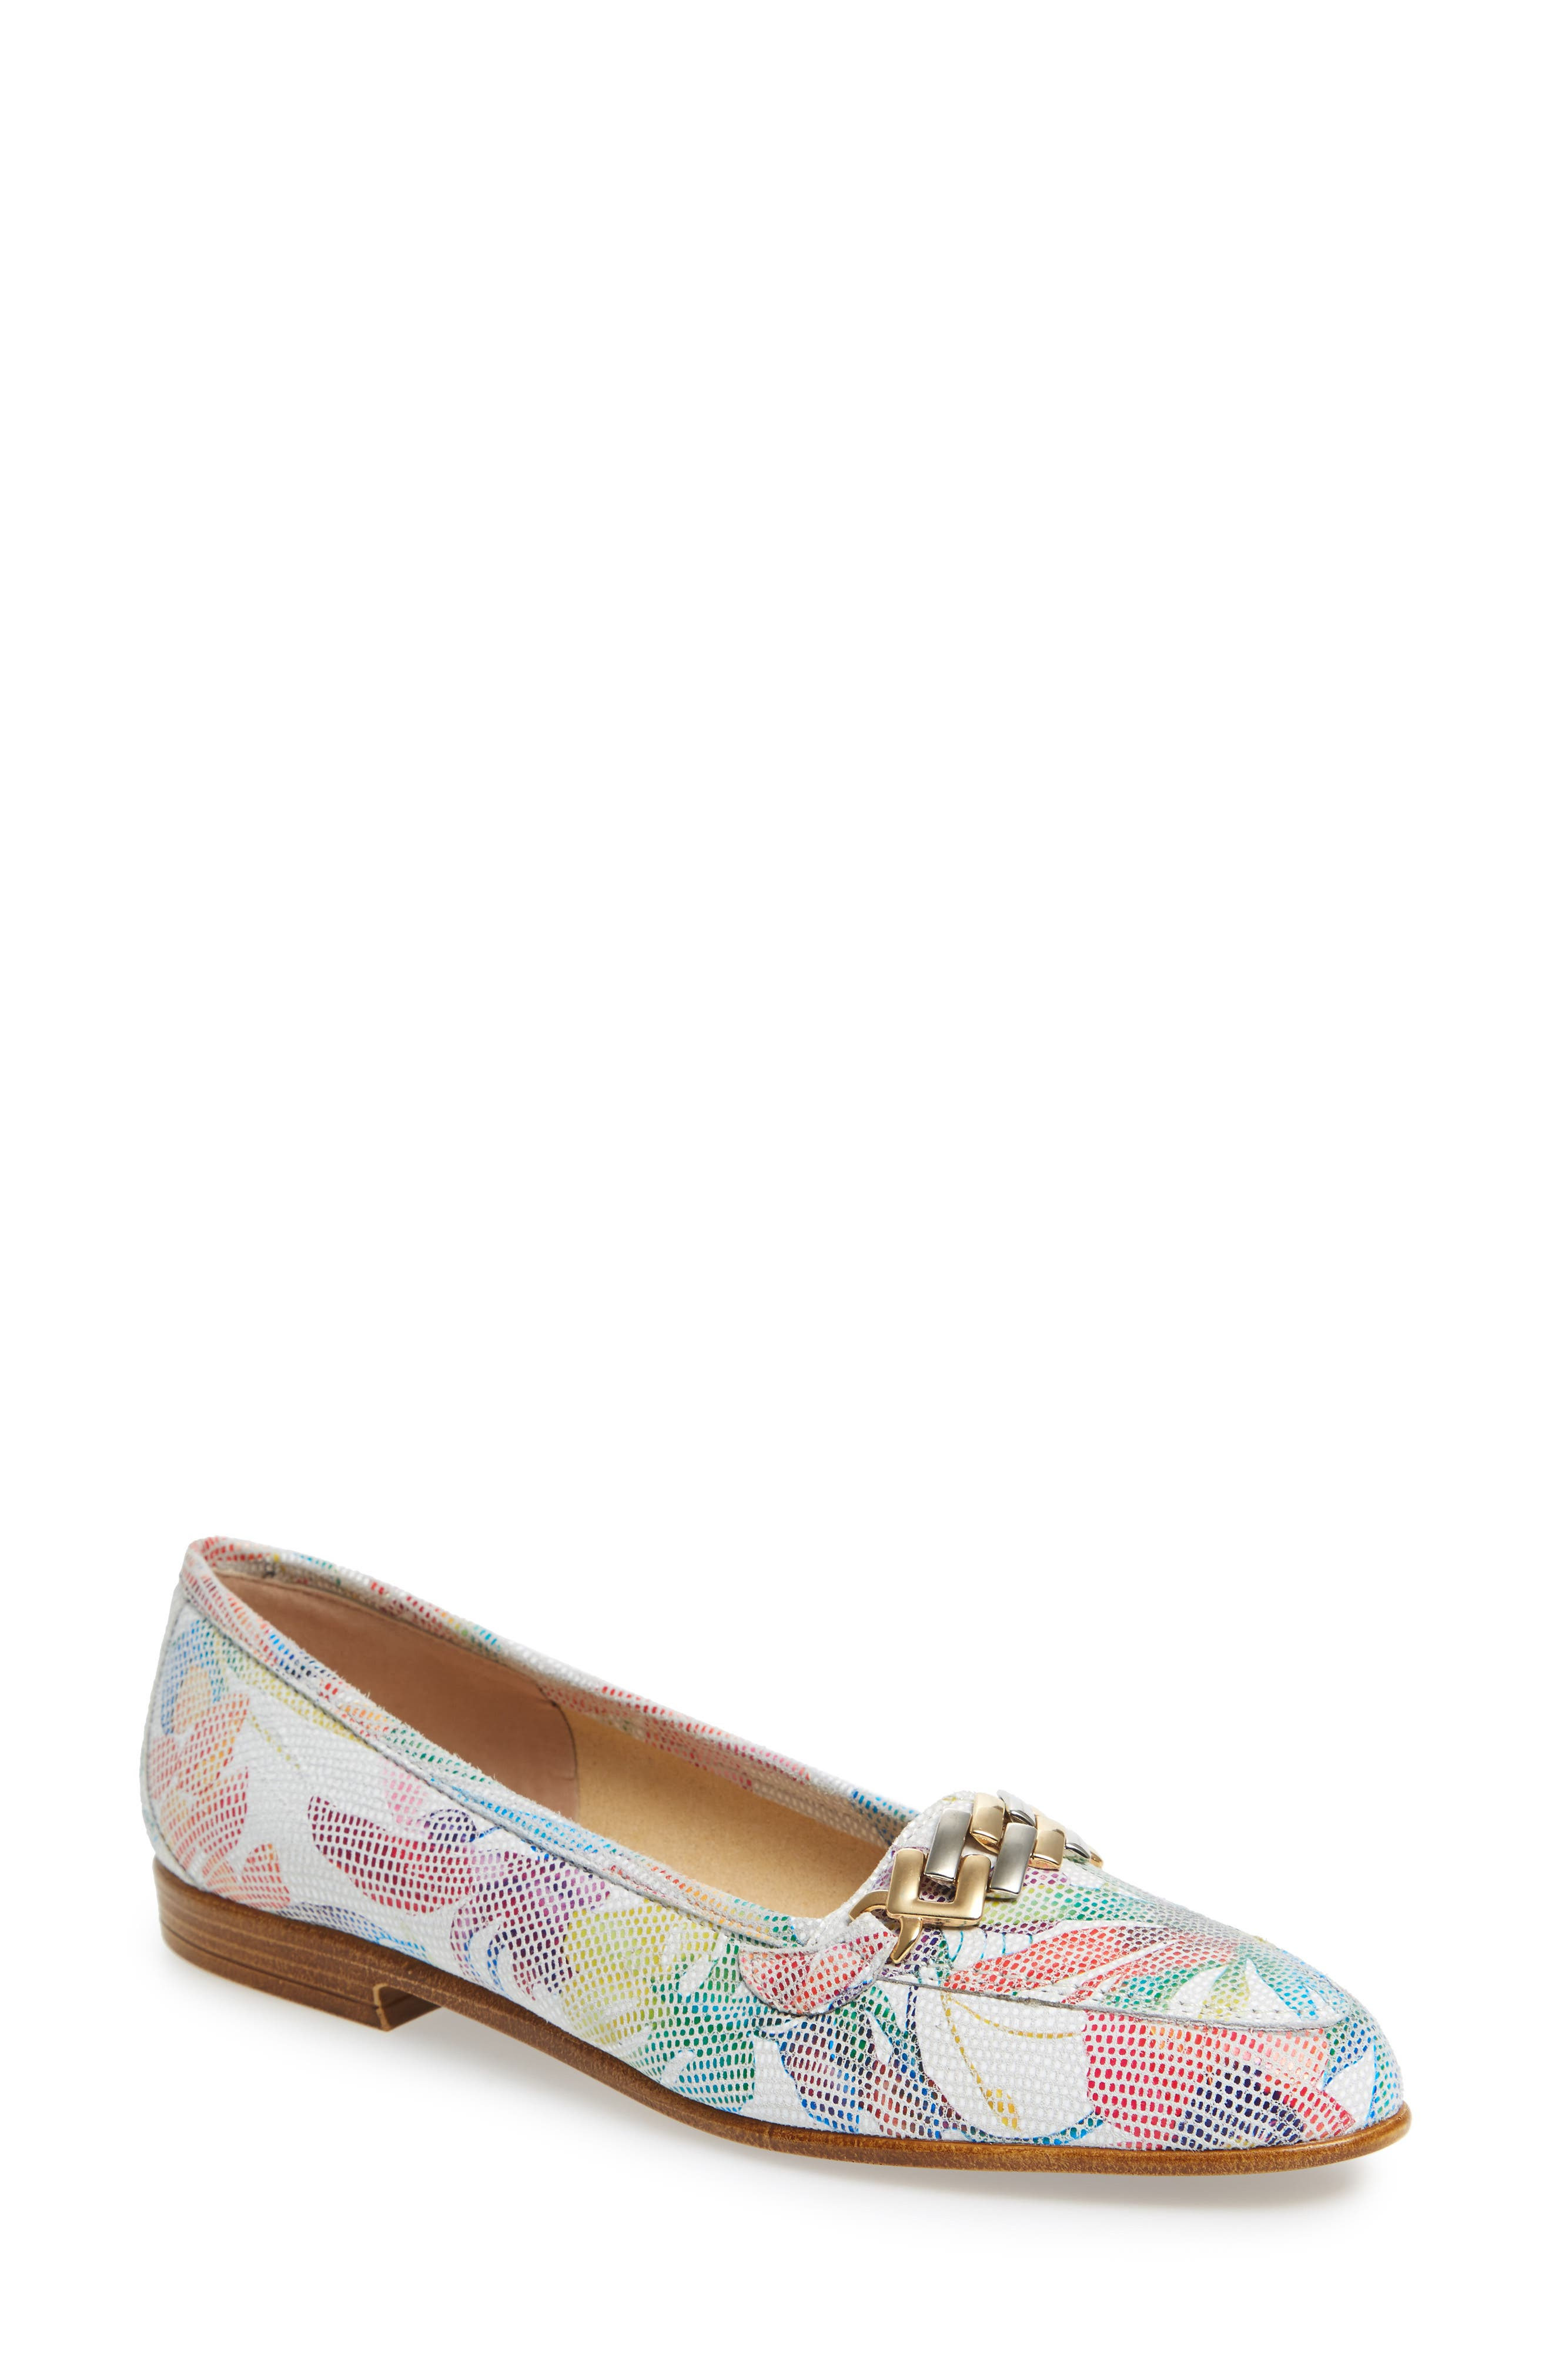 AMALFI BY RANGONI,                             Oste Loafer,                             Main thumbnail 1, color,                             WHITE LEATHER